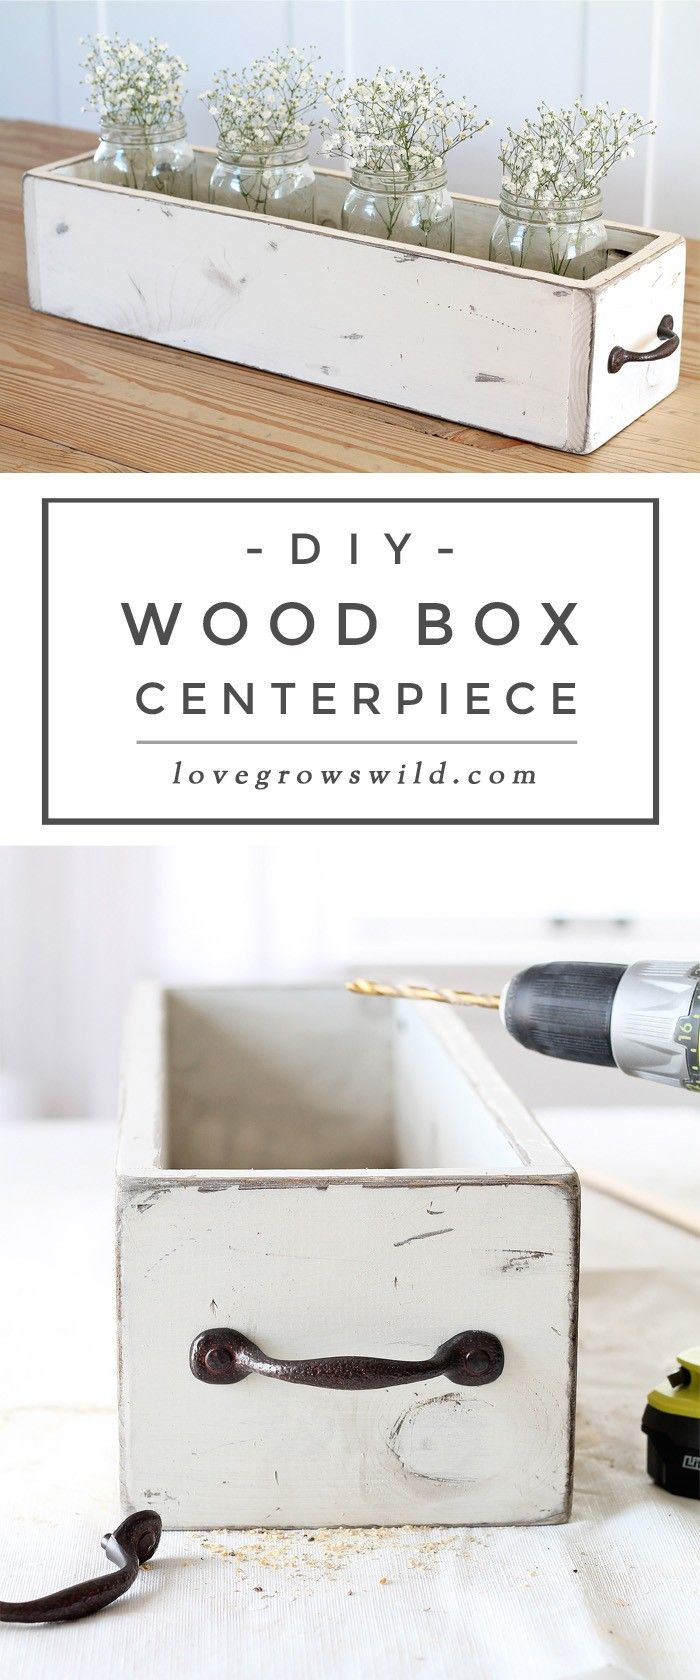 DIY Wood Box Centerpiece | 15 Easy DIY Reclaimed Wood Projects #woodprojects